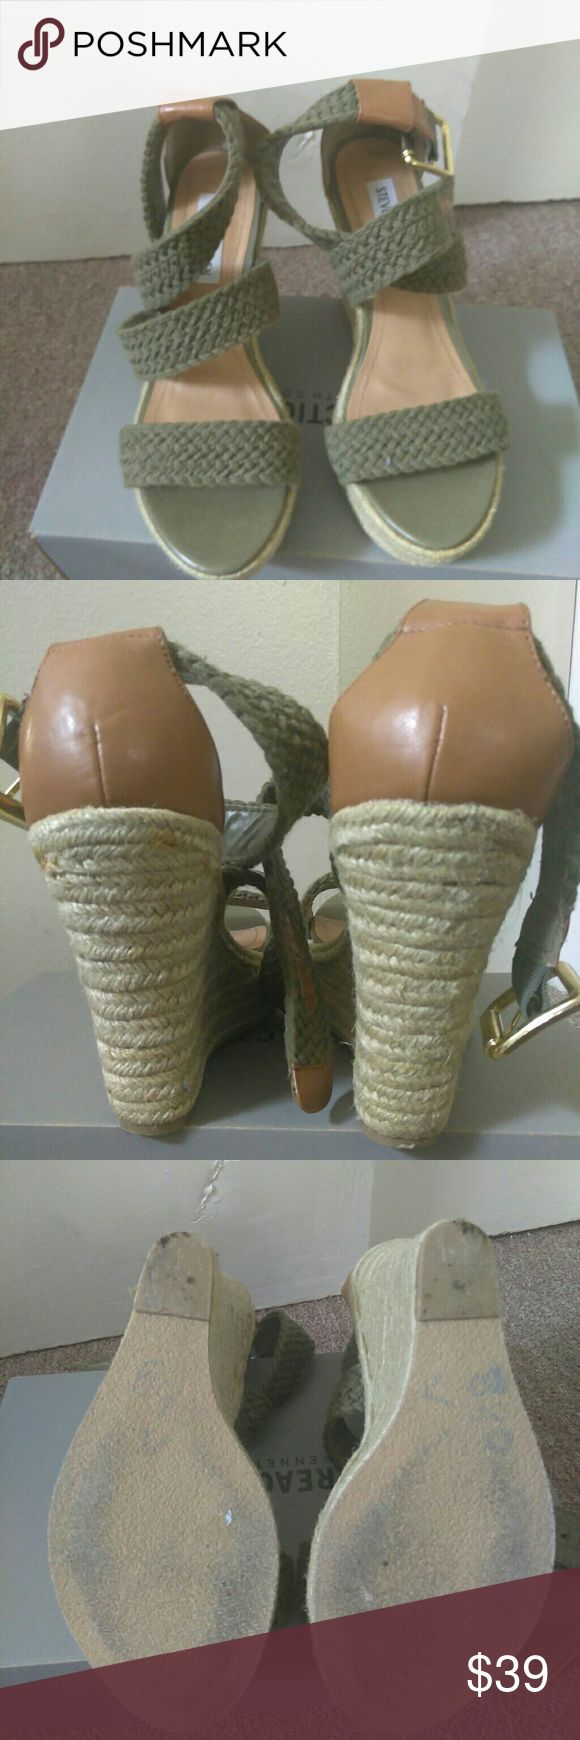 Steeve madden sandals Pretty heels green and light brown sandals sandals like new Shoes Heels